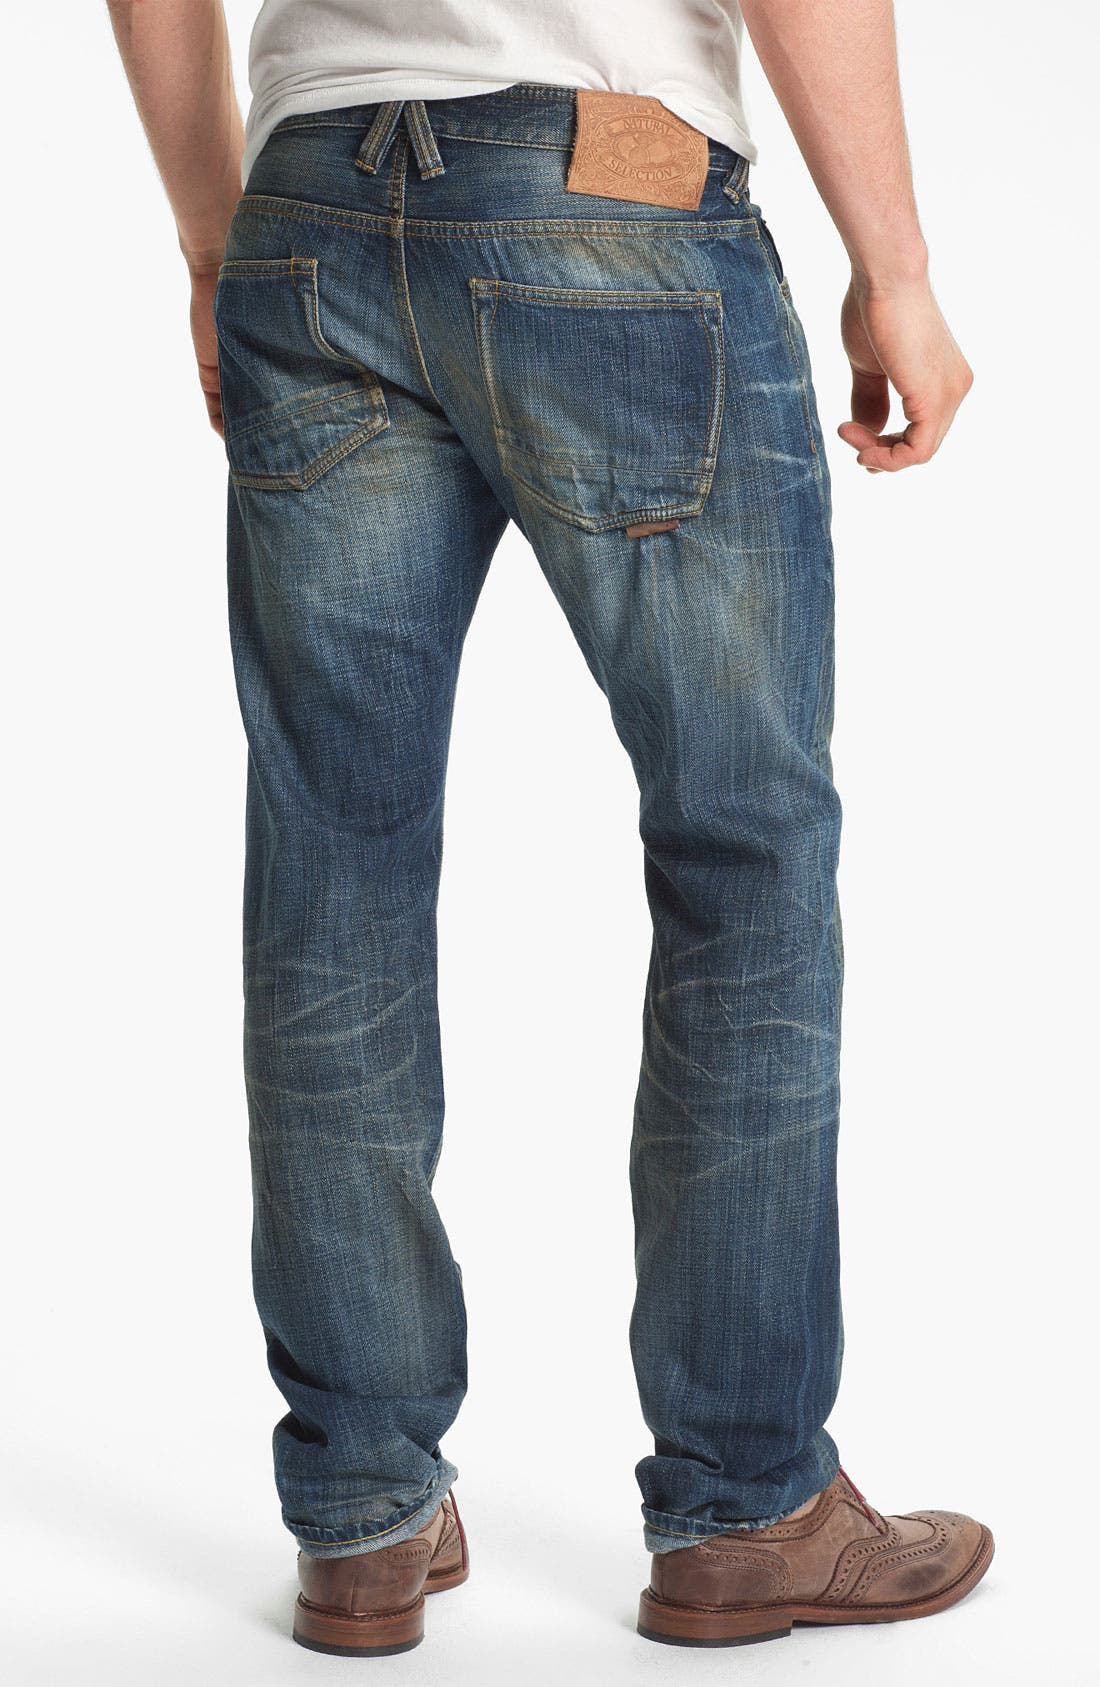 Alternate Image 1 Selected - Natural Selection Denim 'Broken' Narrow Straight Leg Selvedge Jeans (Dune)